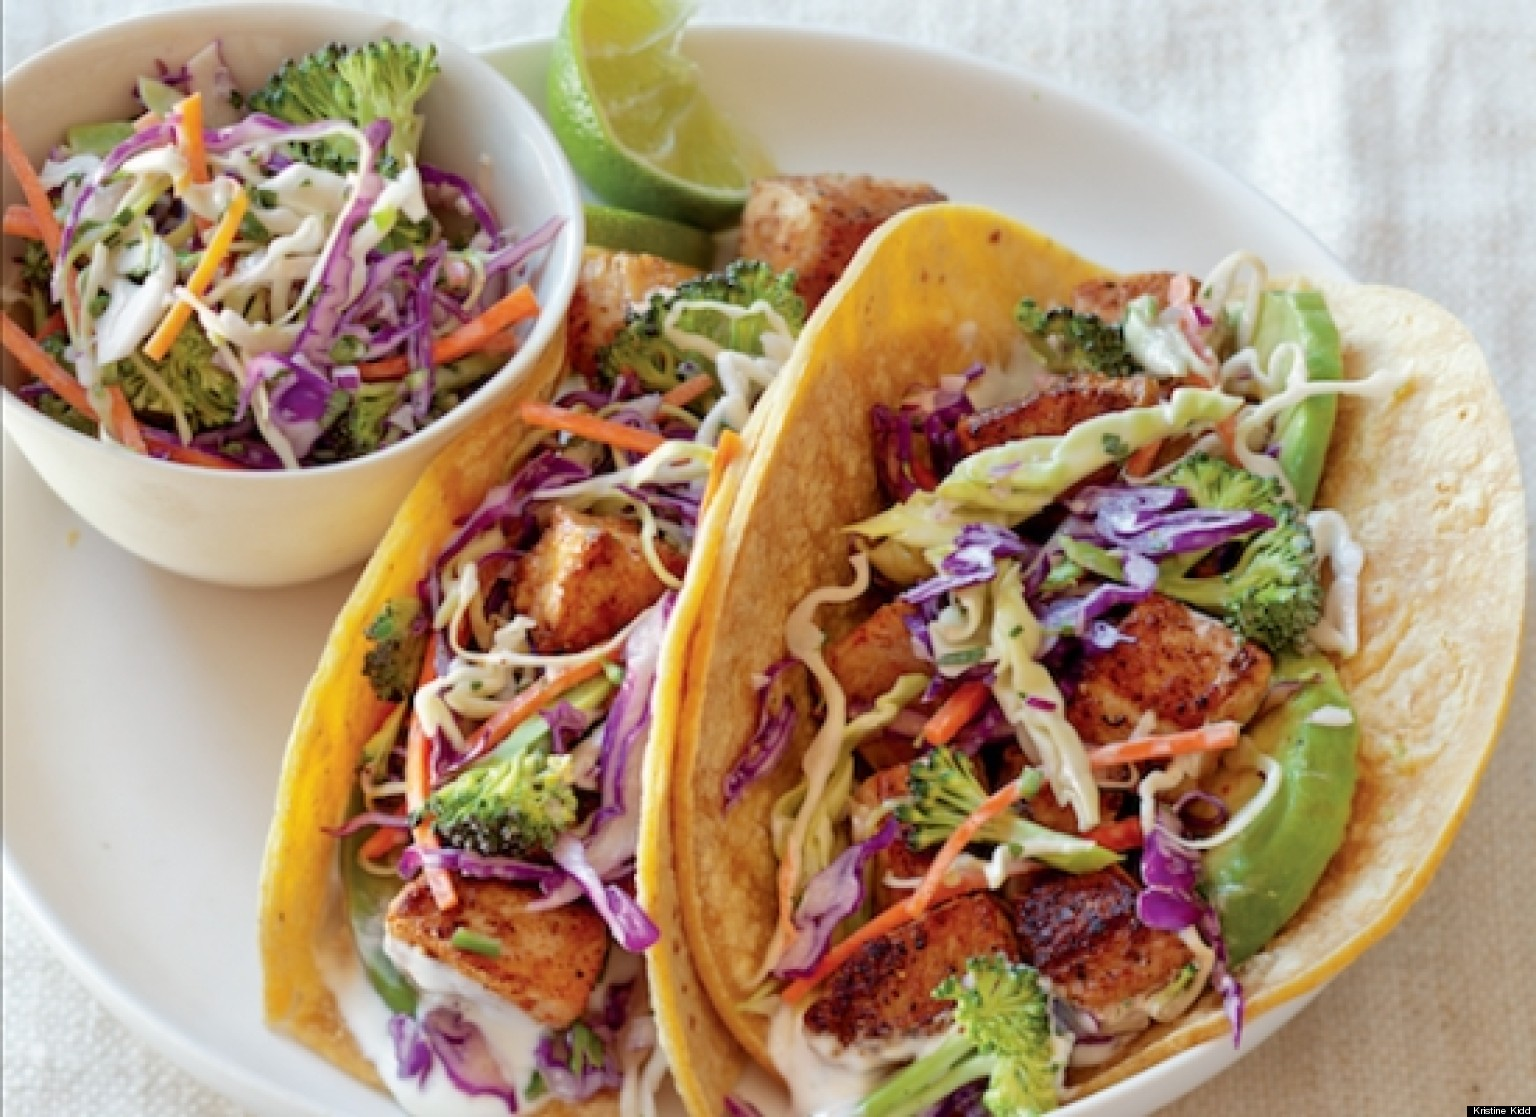 Fish tacos recipe with broccoli slaw and lime cream sauce for Fish taco recipie